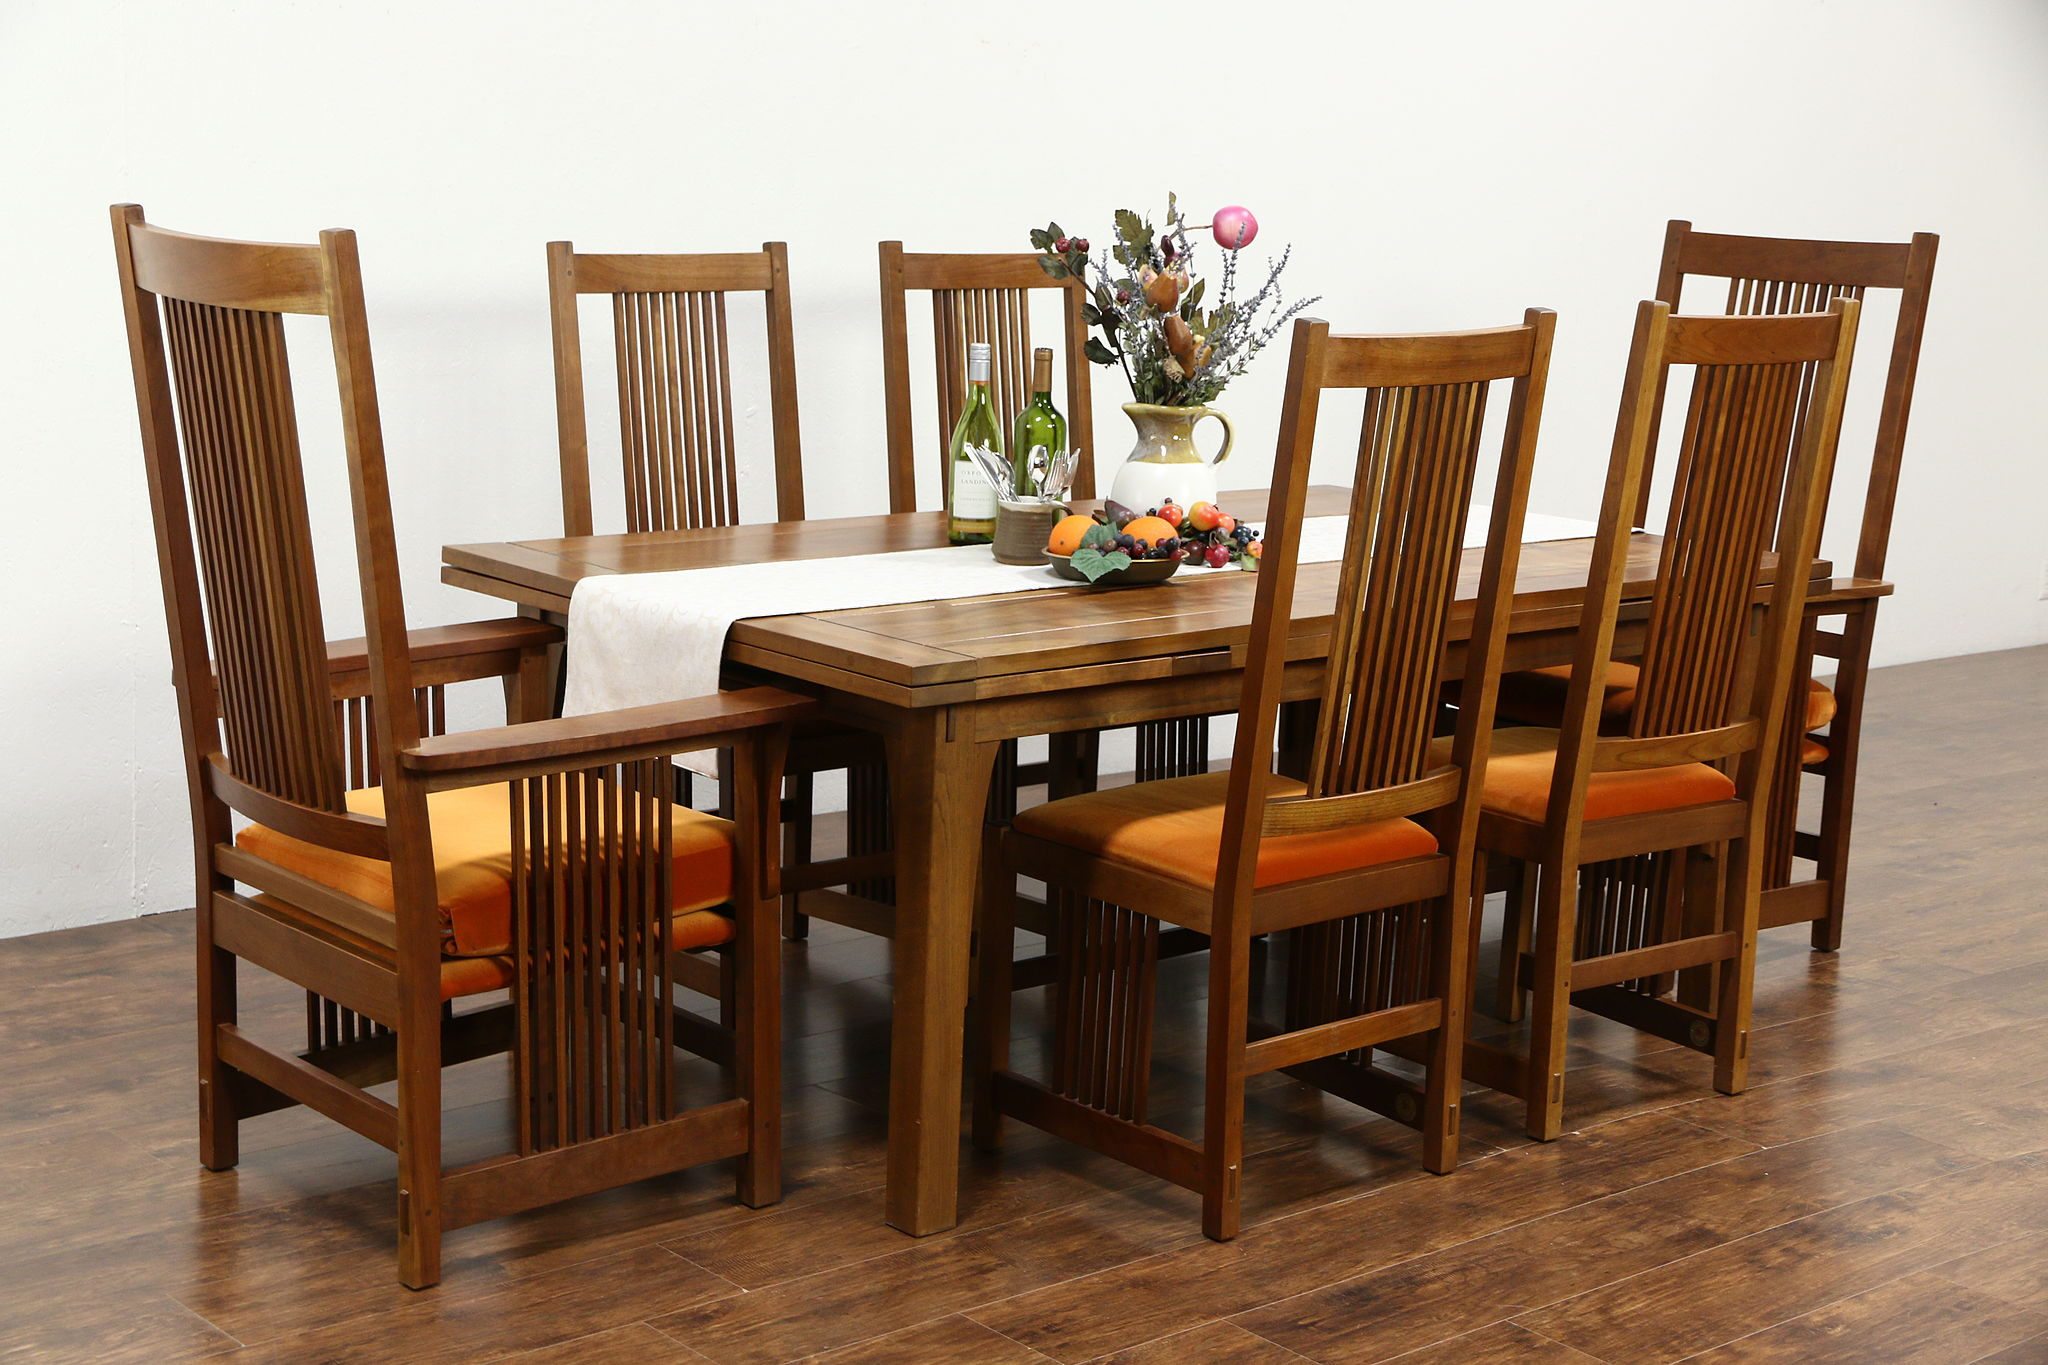 Enjoyable Stickley Signed Cherry Craftsman Design 1995 Dining Set Table Leaves 6 Chairs Alphanode Cool Chair Designs And Ideas Alphanodeonline